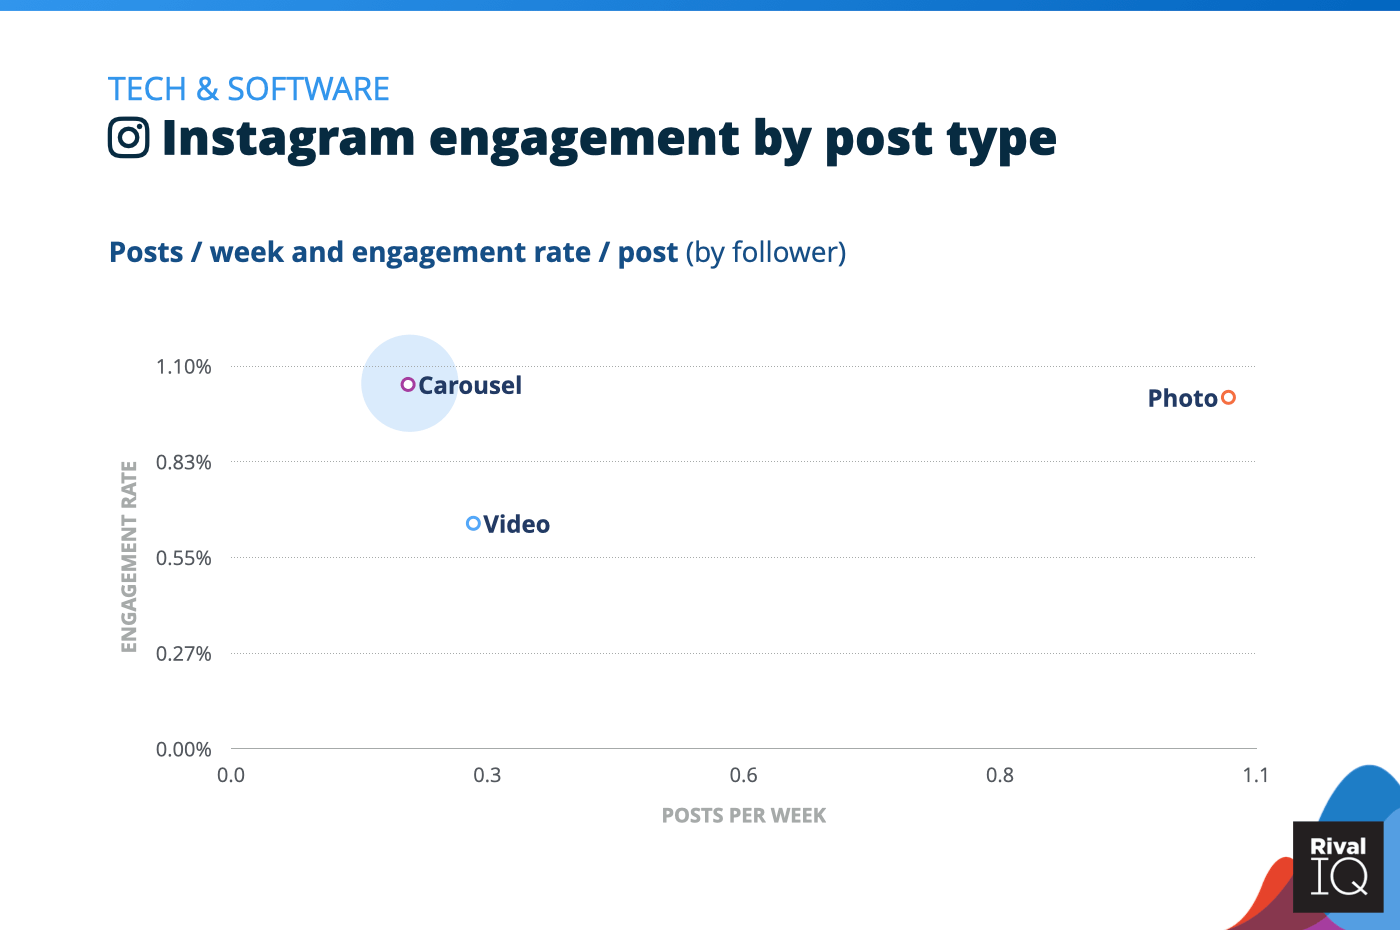 Chart of Instagram posts per week and engagement rate by post type, Tech & Software